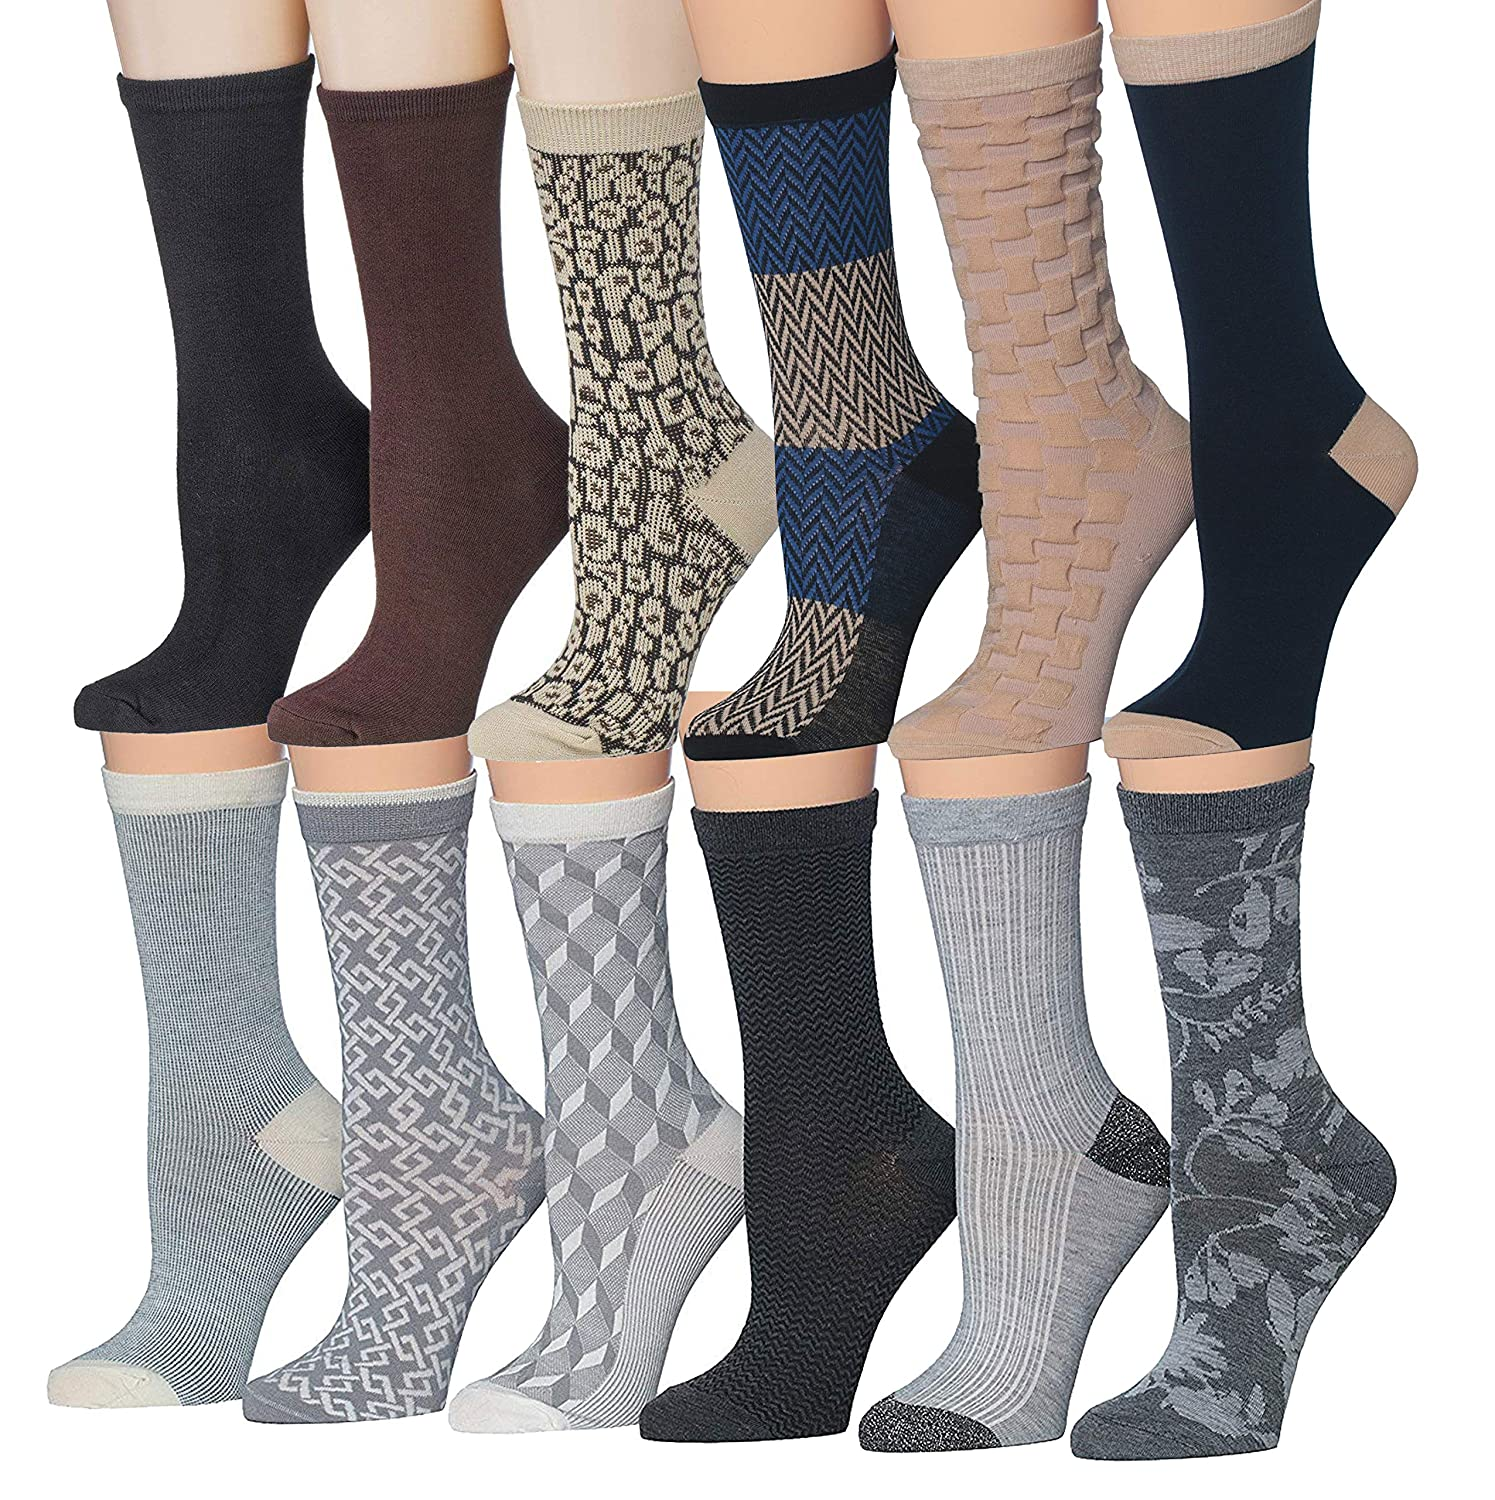 Jvc04252627 Tipi Toe Women's 12 Pairs colorful Patterned Crew Socks